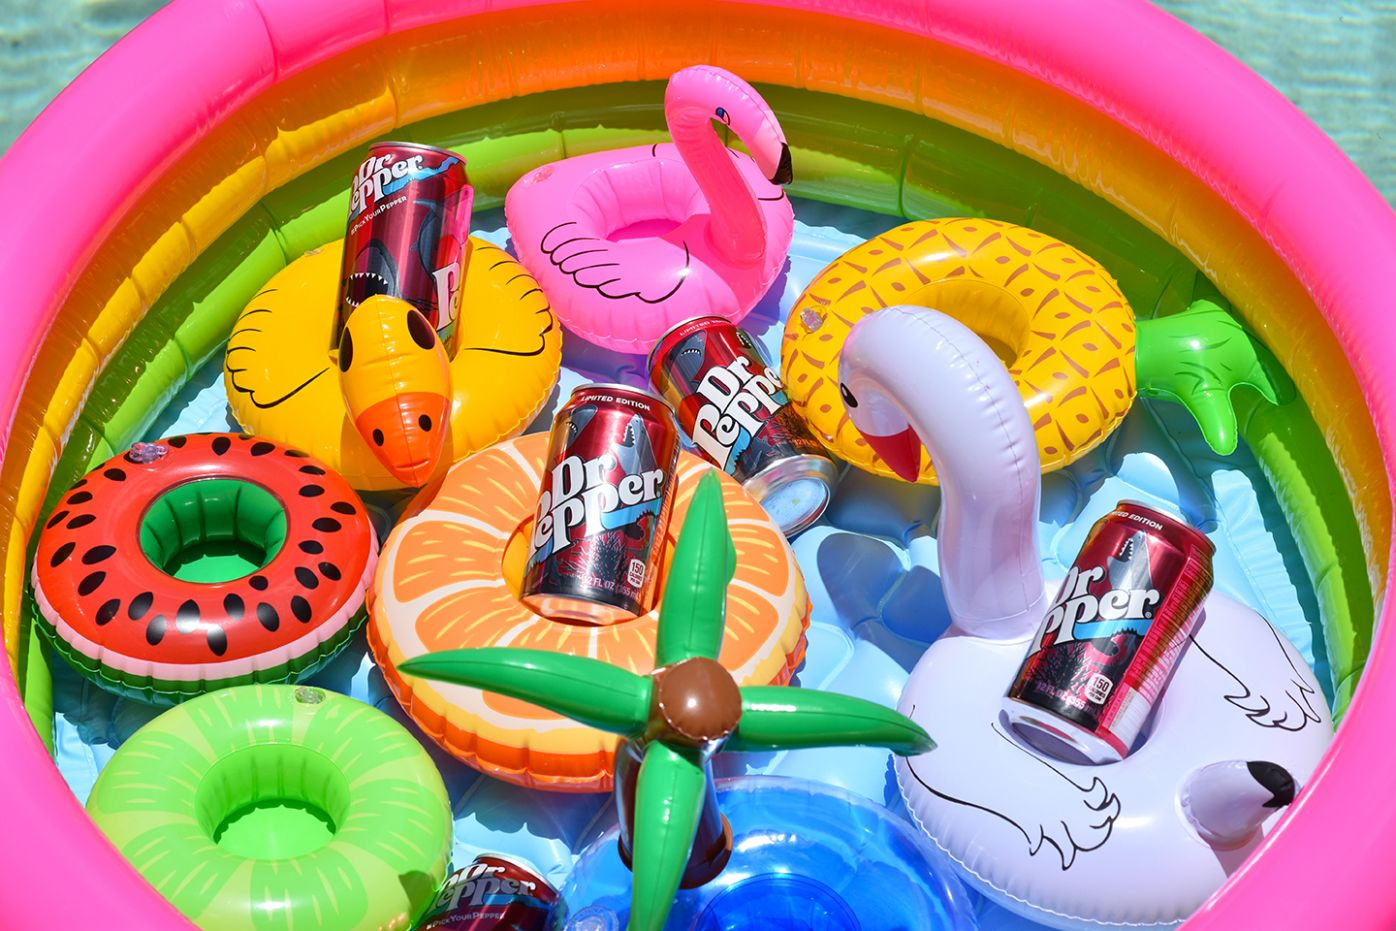 Pool Party Ideas for Adults • Happy Family Blog - pool party ideas for adults